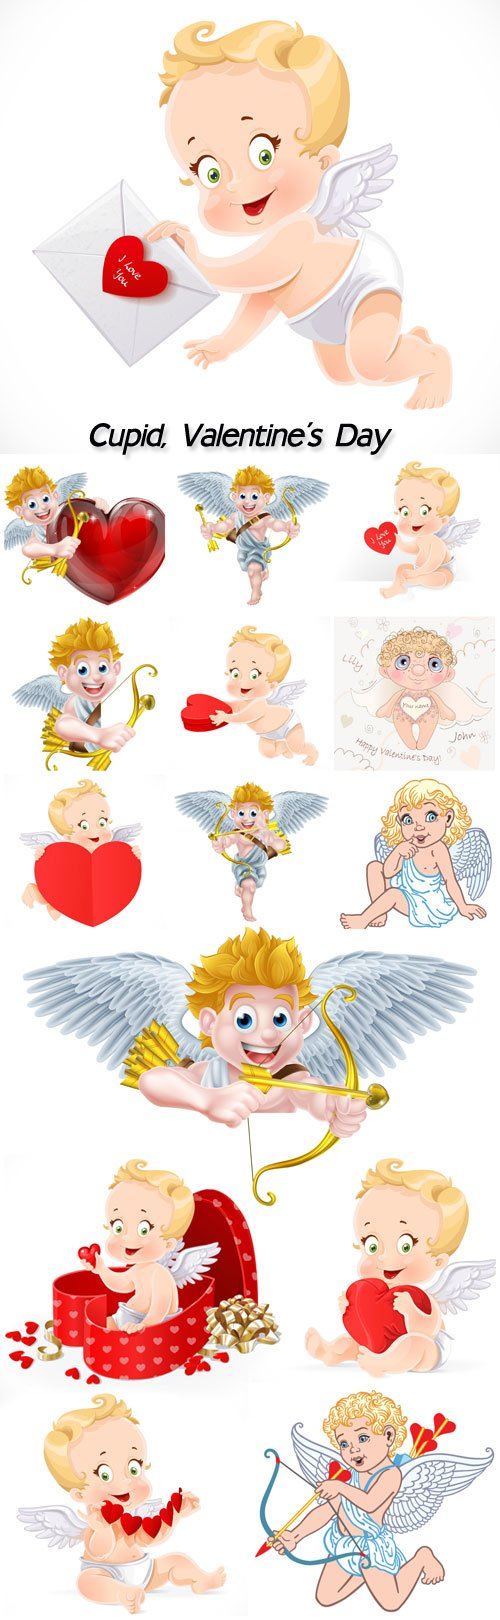 Cupid, Valentine's Day, angels with hearts